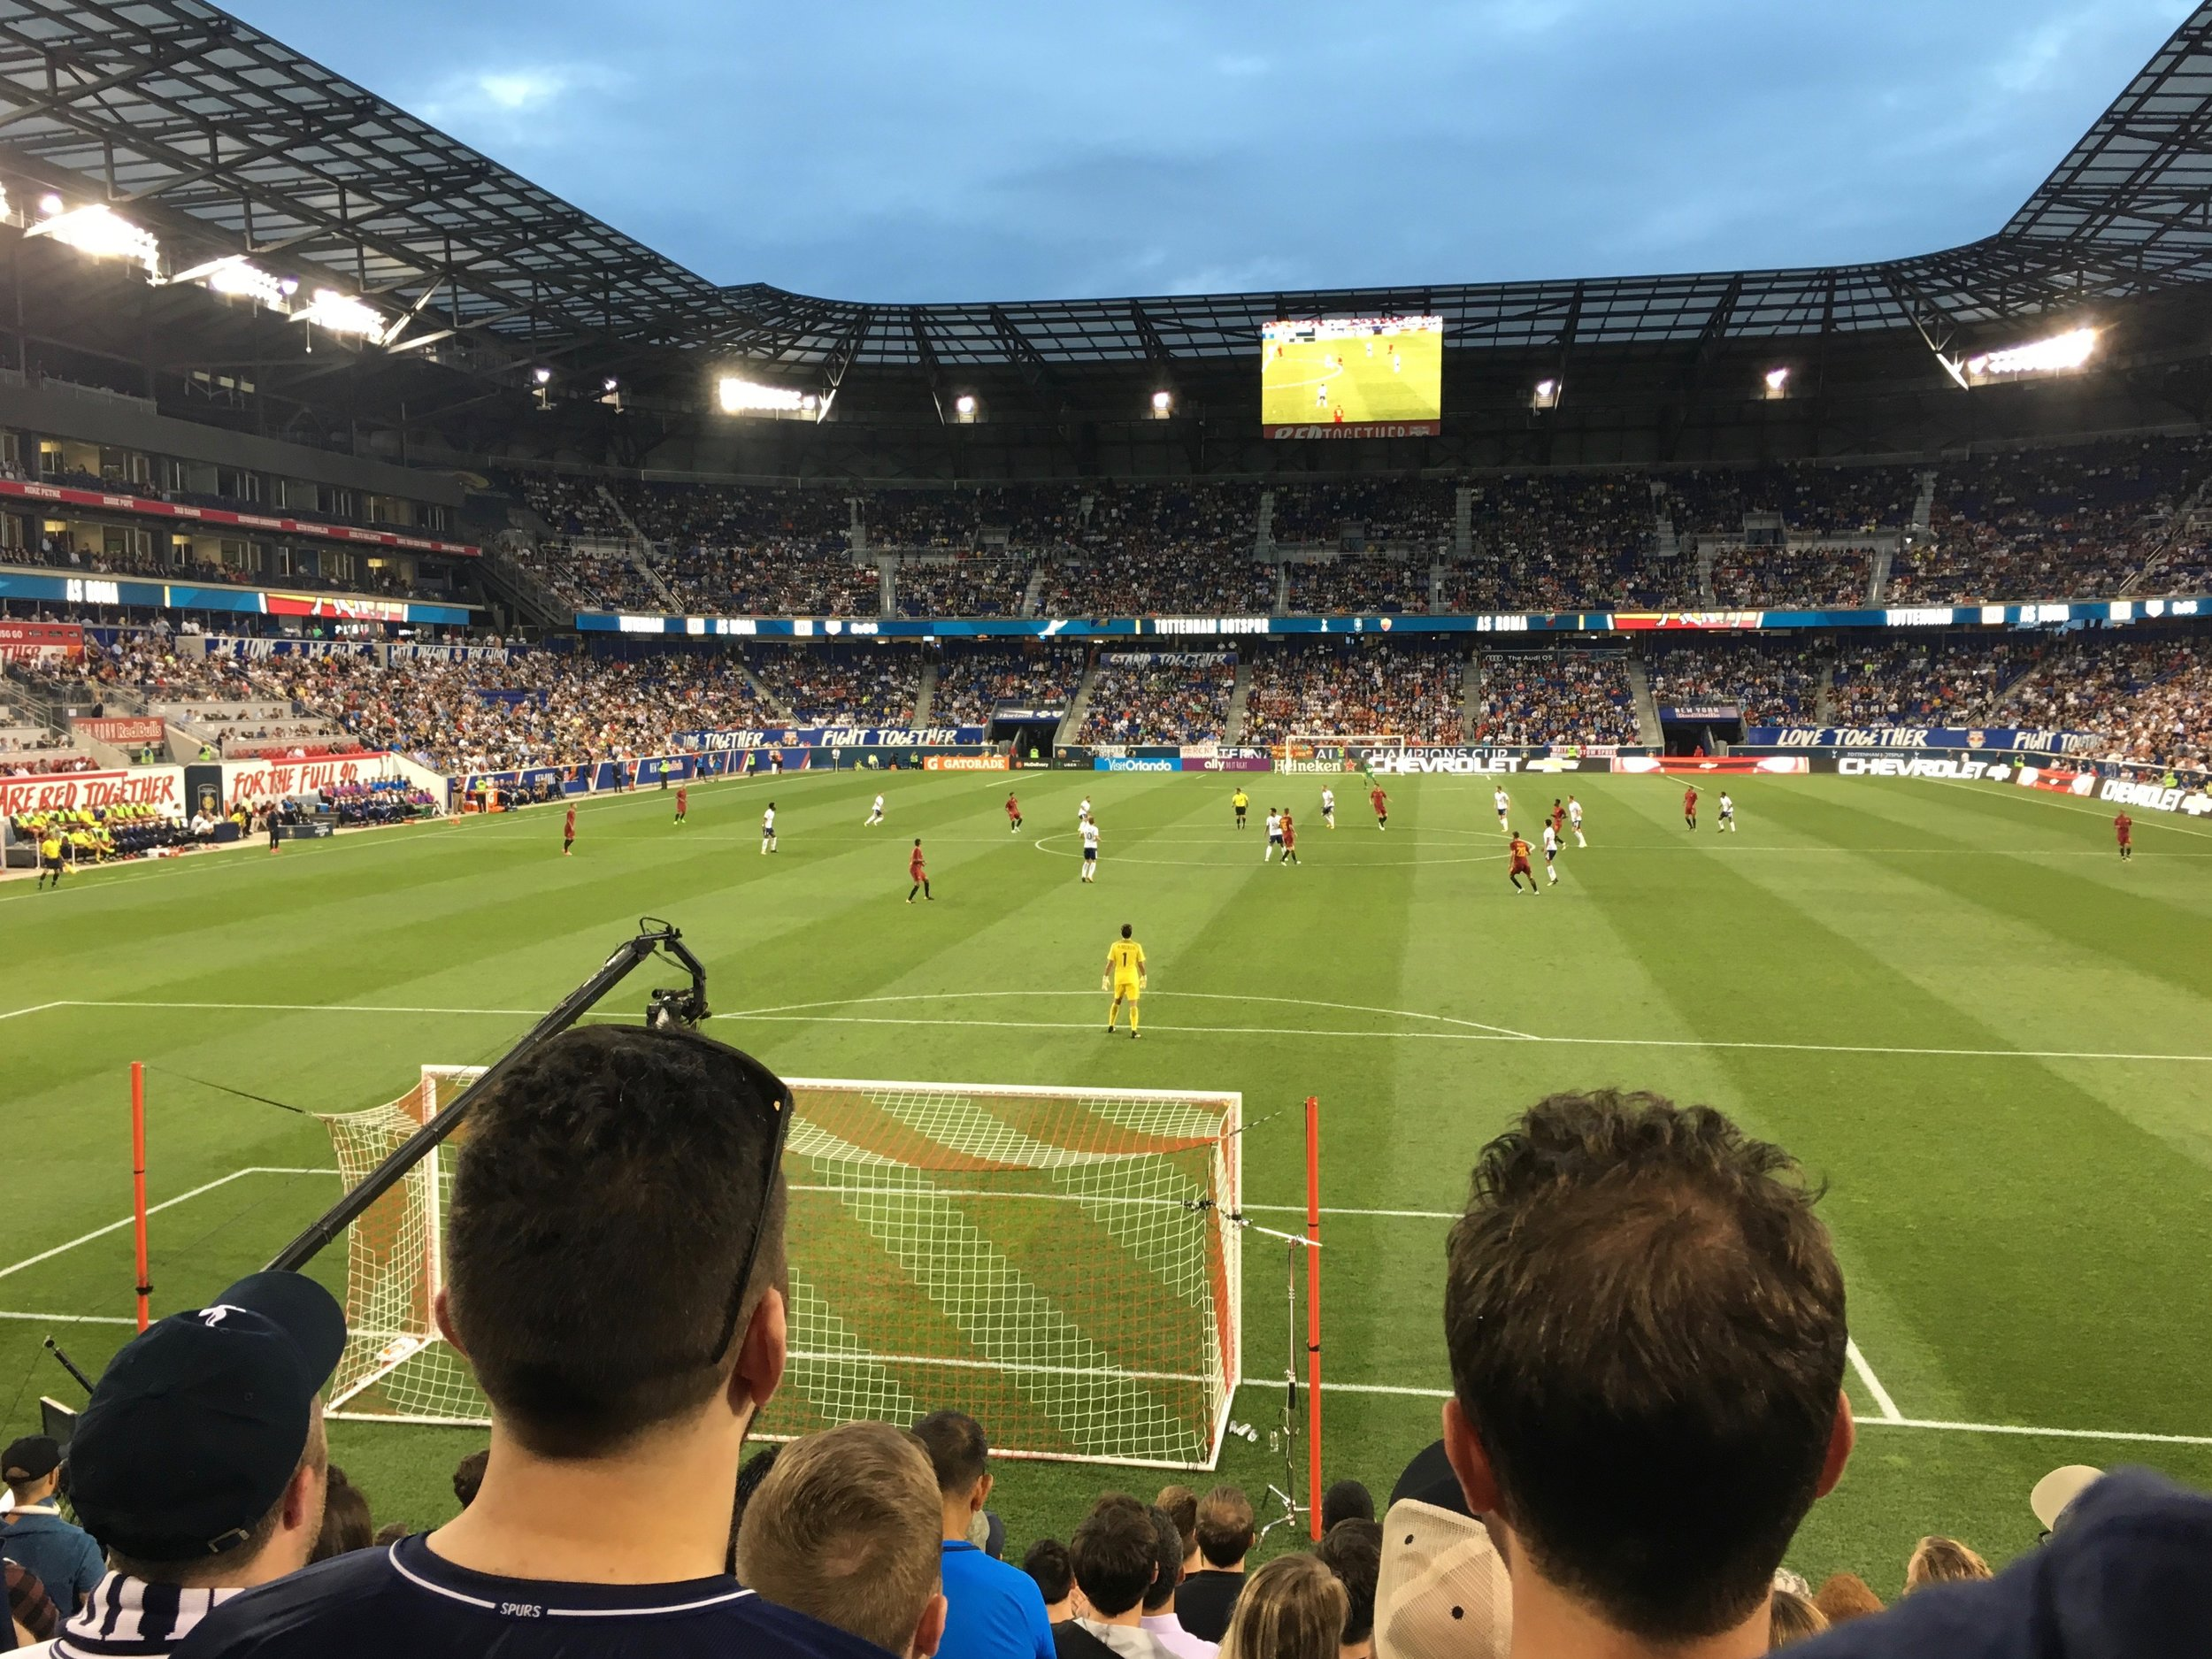 Spurs play in NYC (at the NY Red Bulls' arena in Harrison, NJ)